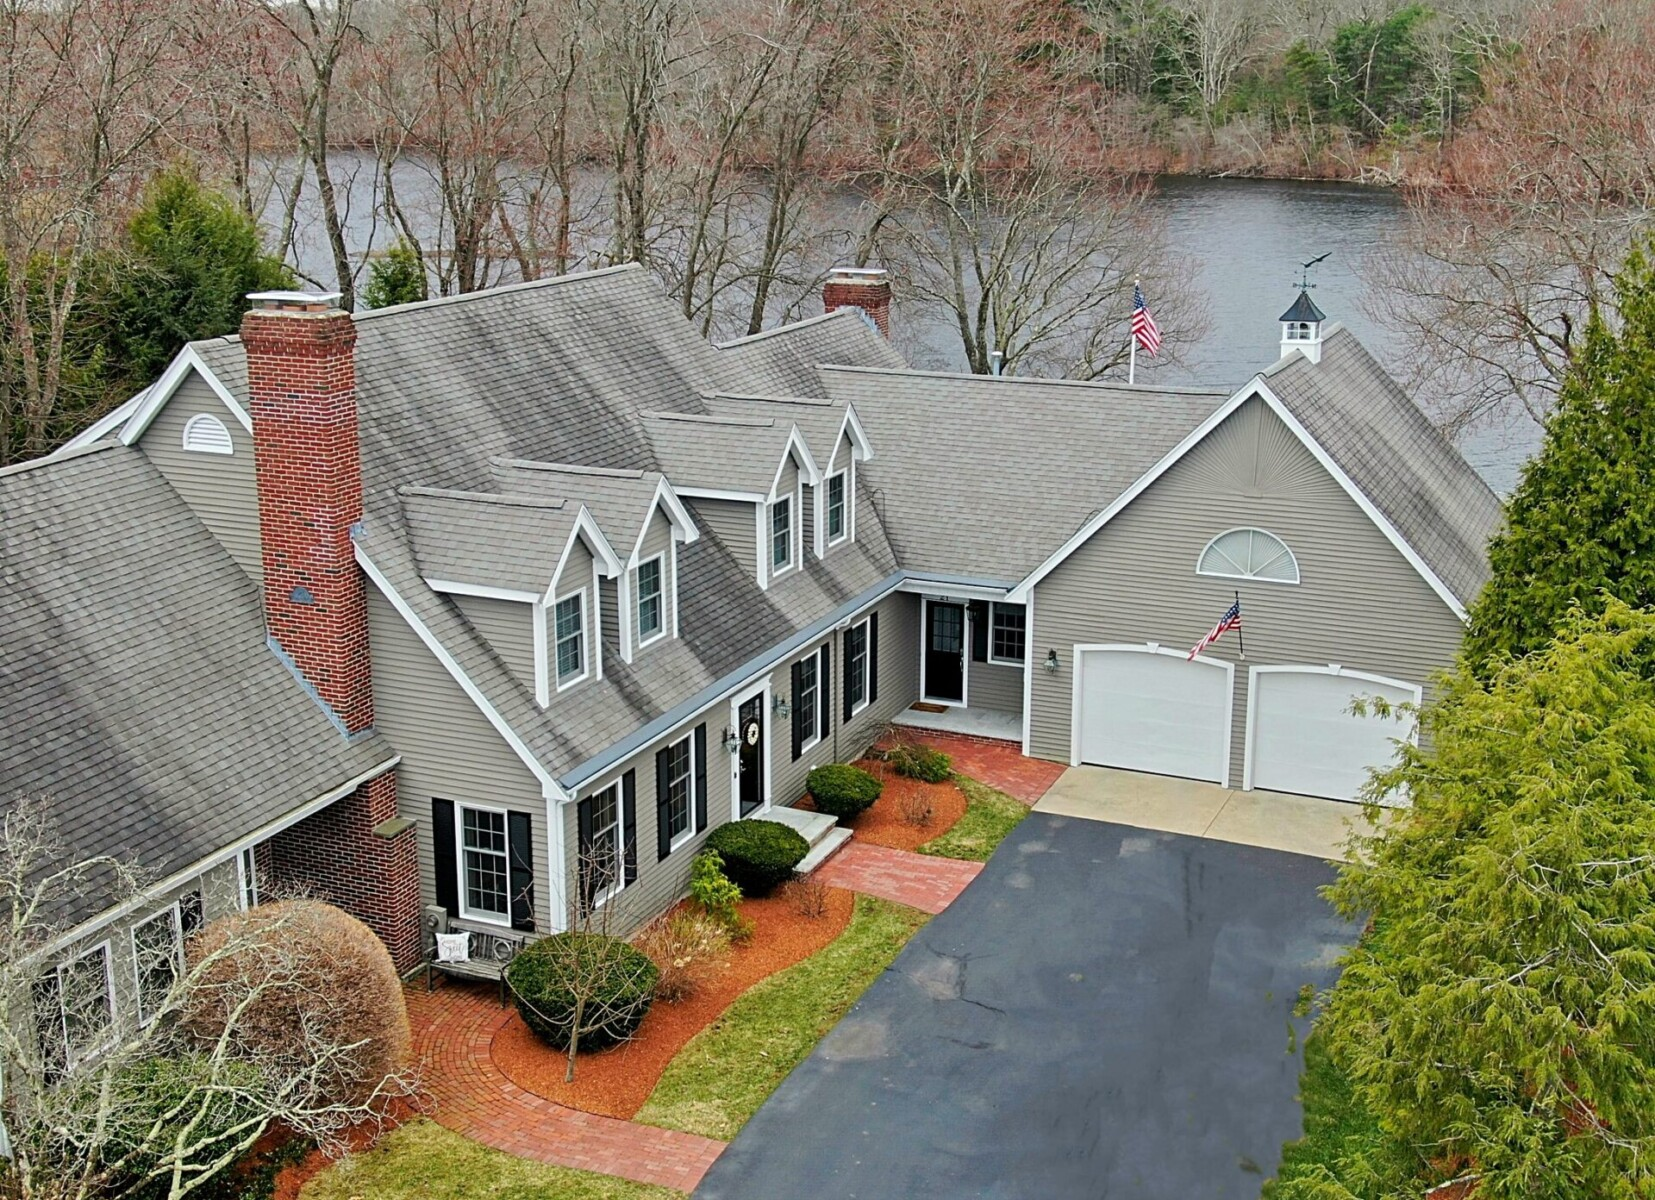 Aerial (drone) view of the front of a 2-story colonial style home in North Attleboro, MA